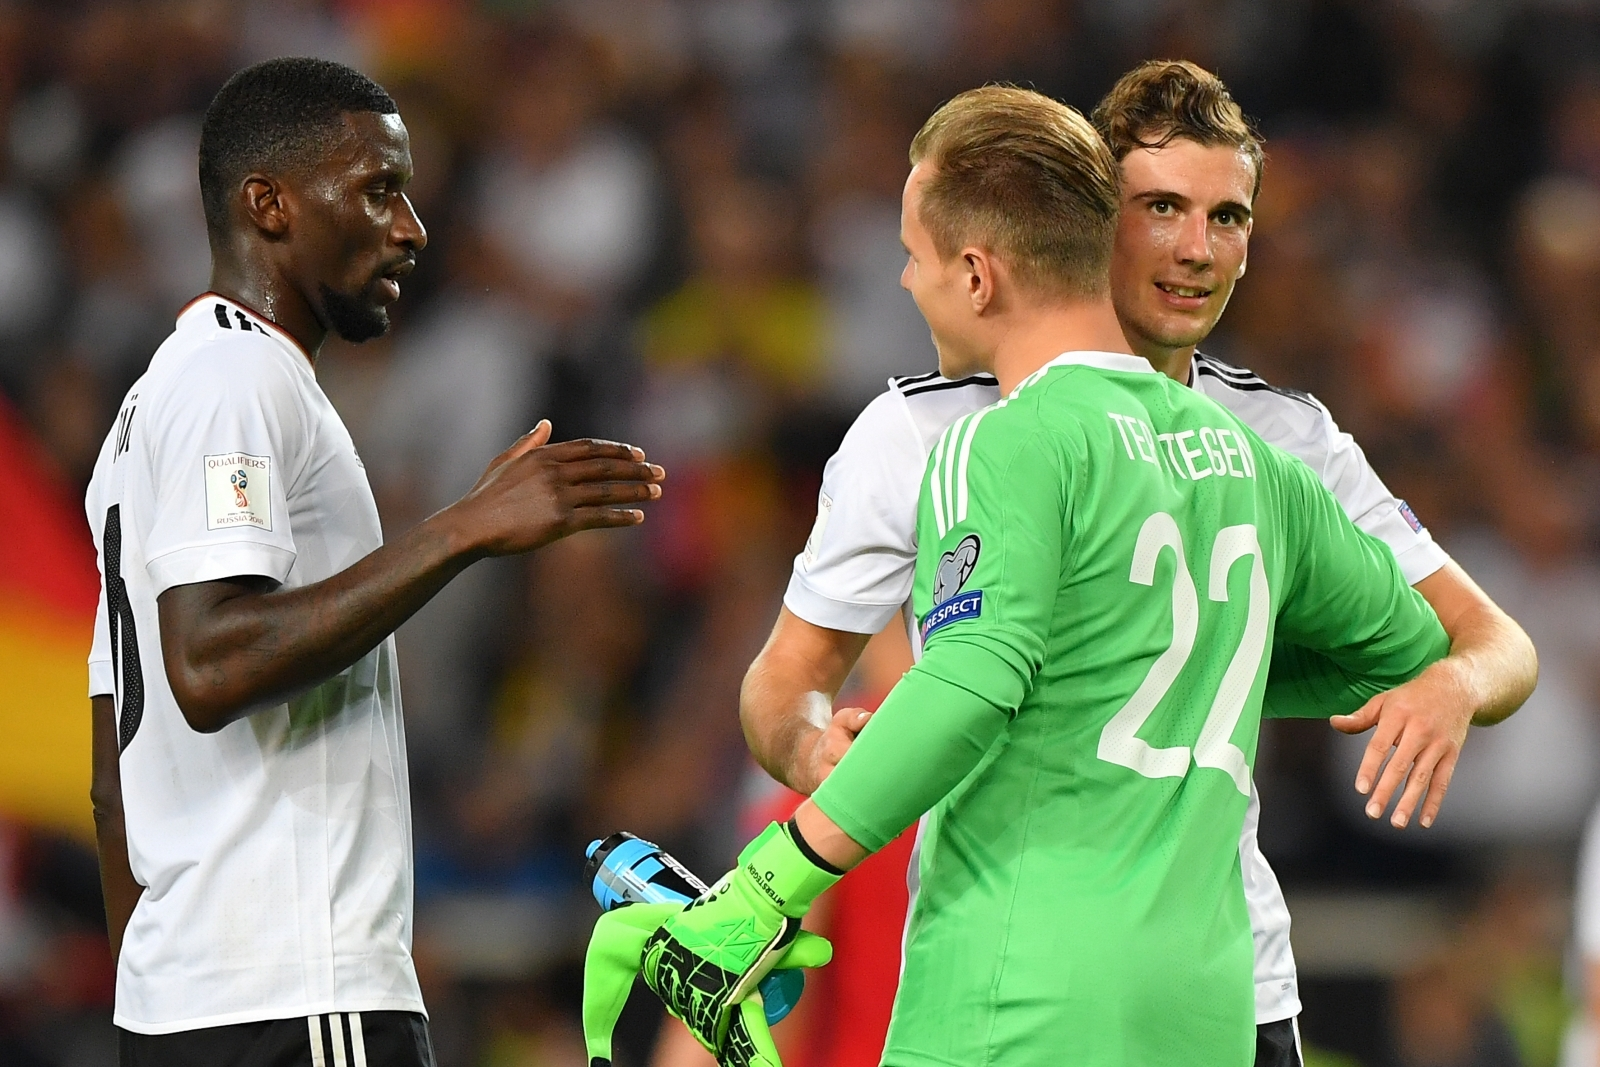 Barcelona goalkeeper Ter Stegen: Goretzka good enough for any major club